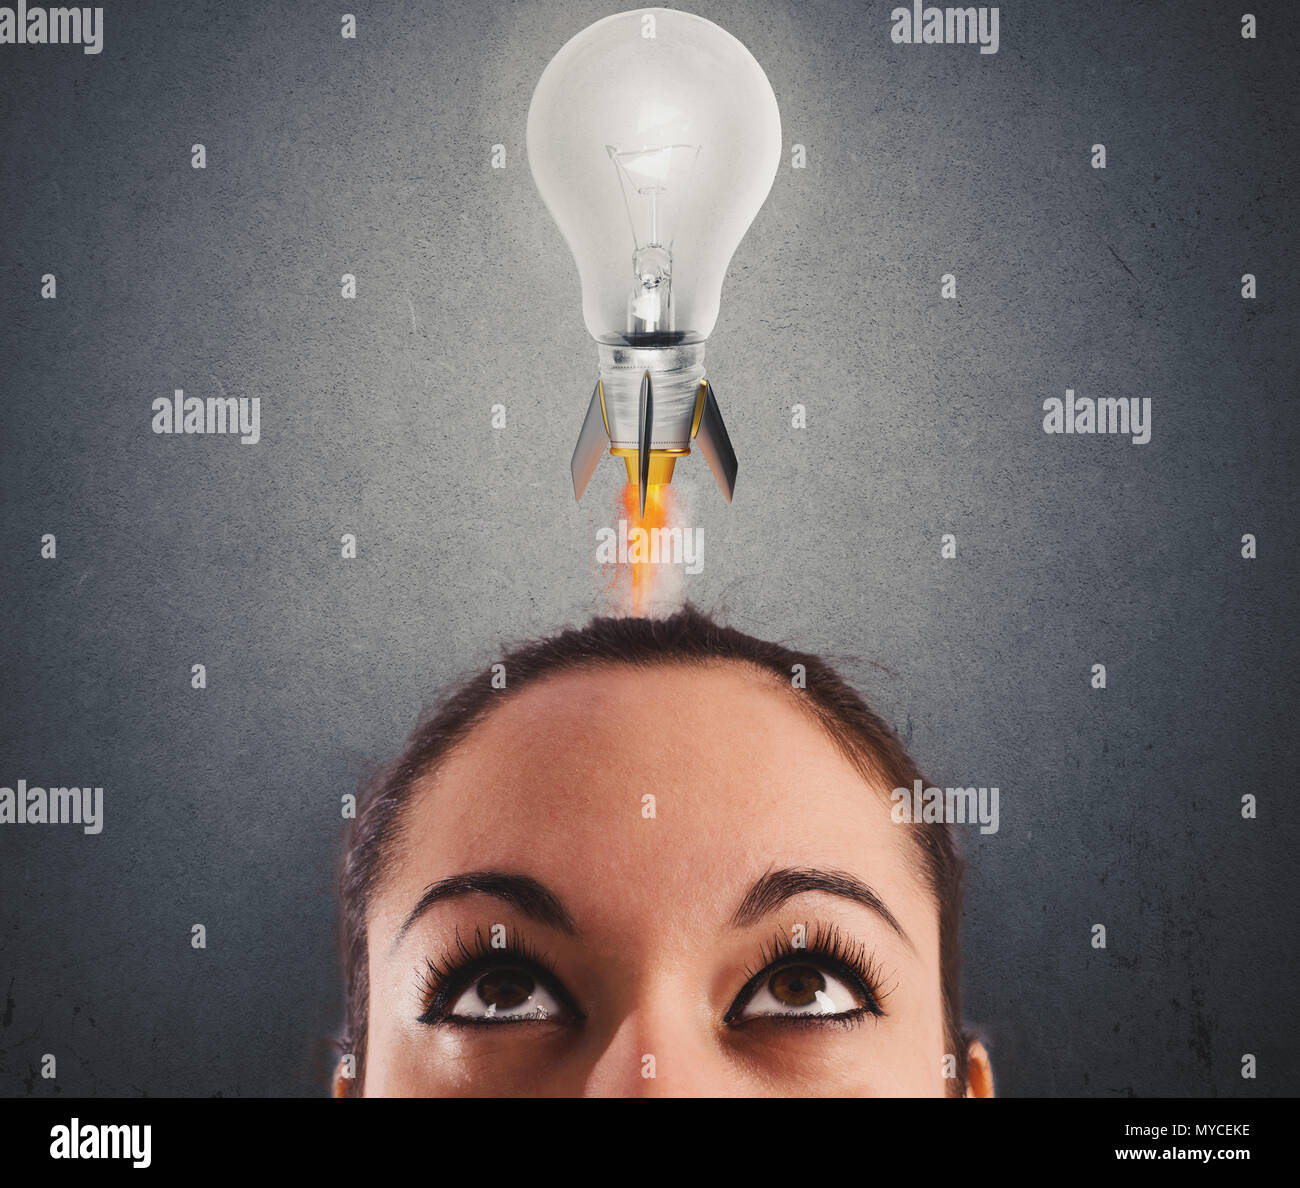 Fast lightbulb as a rocket ready to fly. Concept of new super idea - Stock Image